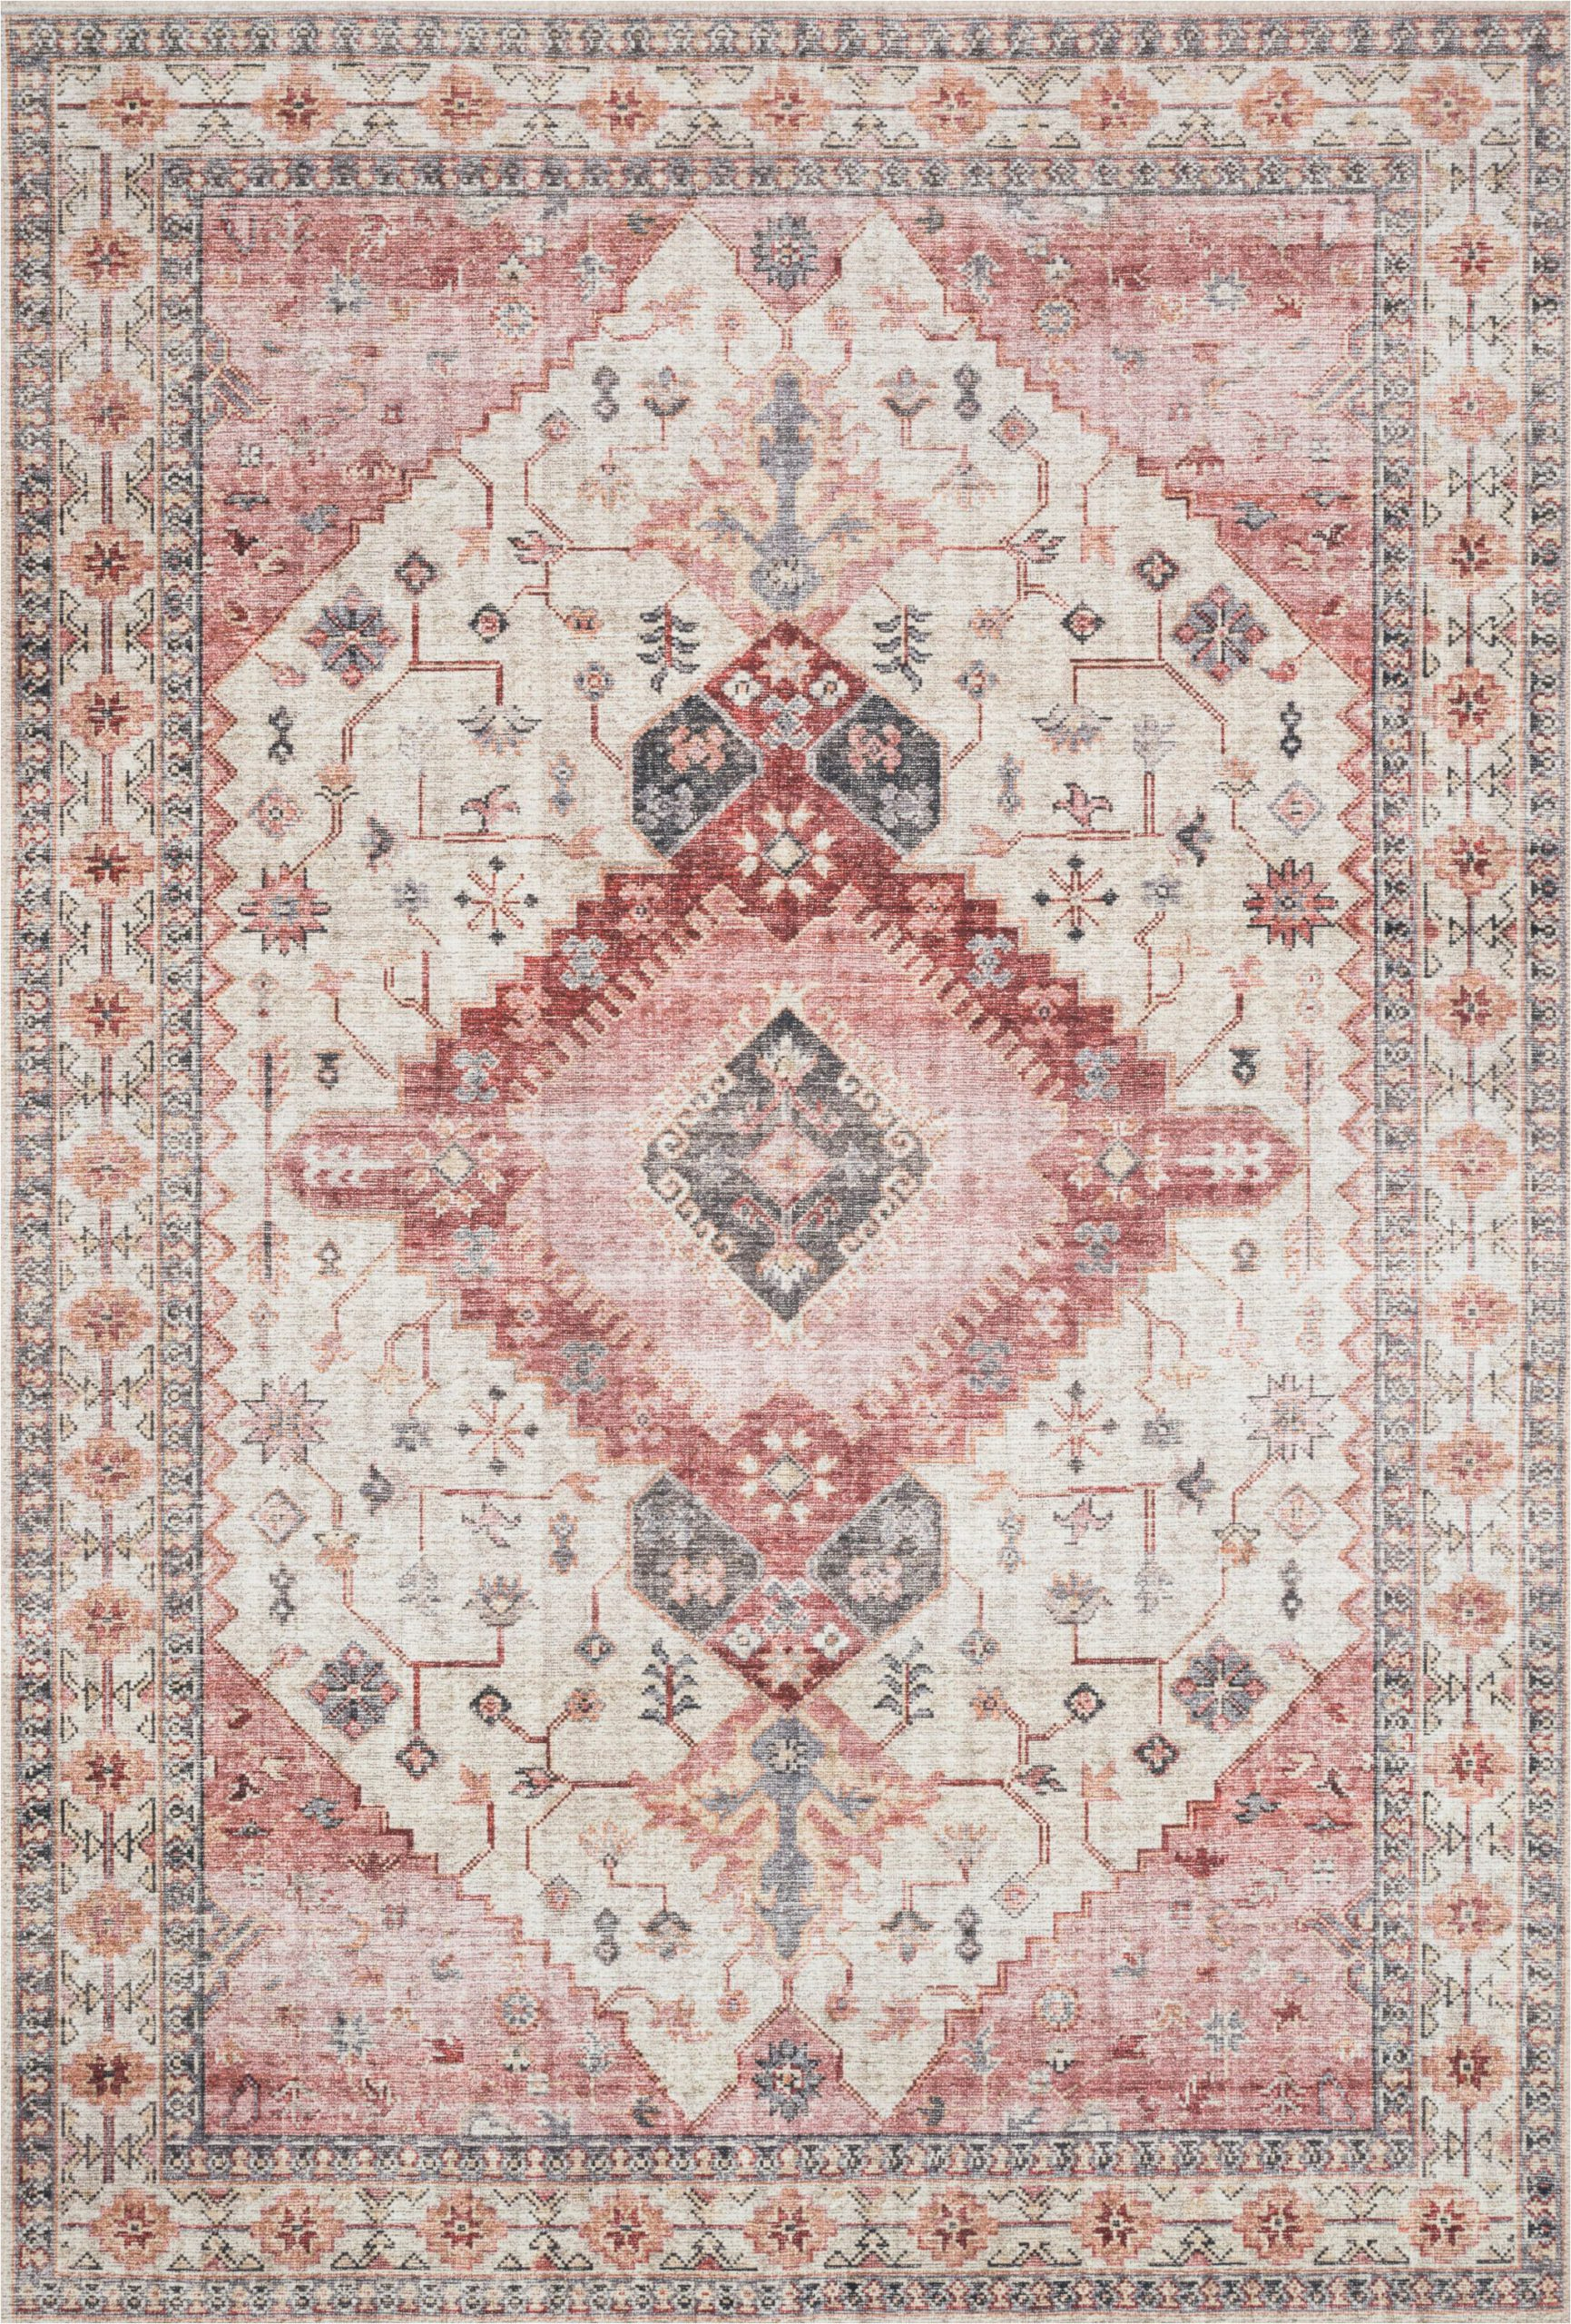 Pink and Blue Persian Rug Pink and Gray southwestern Boho Bohemian Persian Style Rug